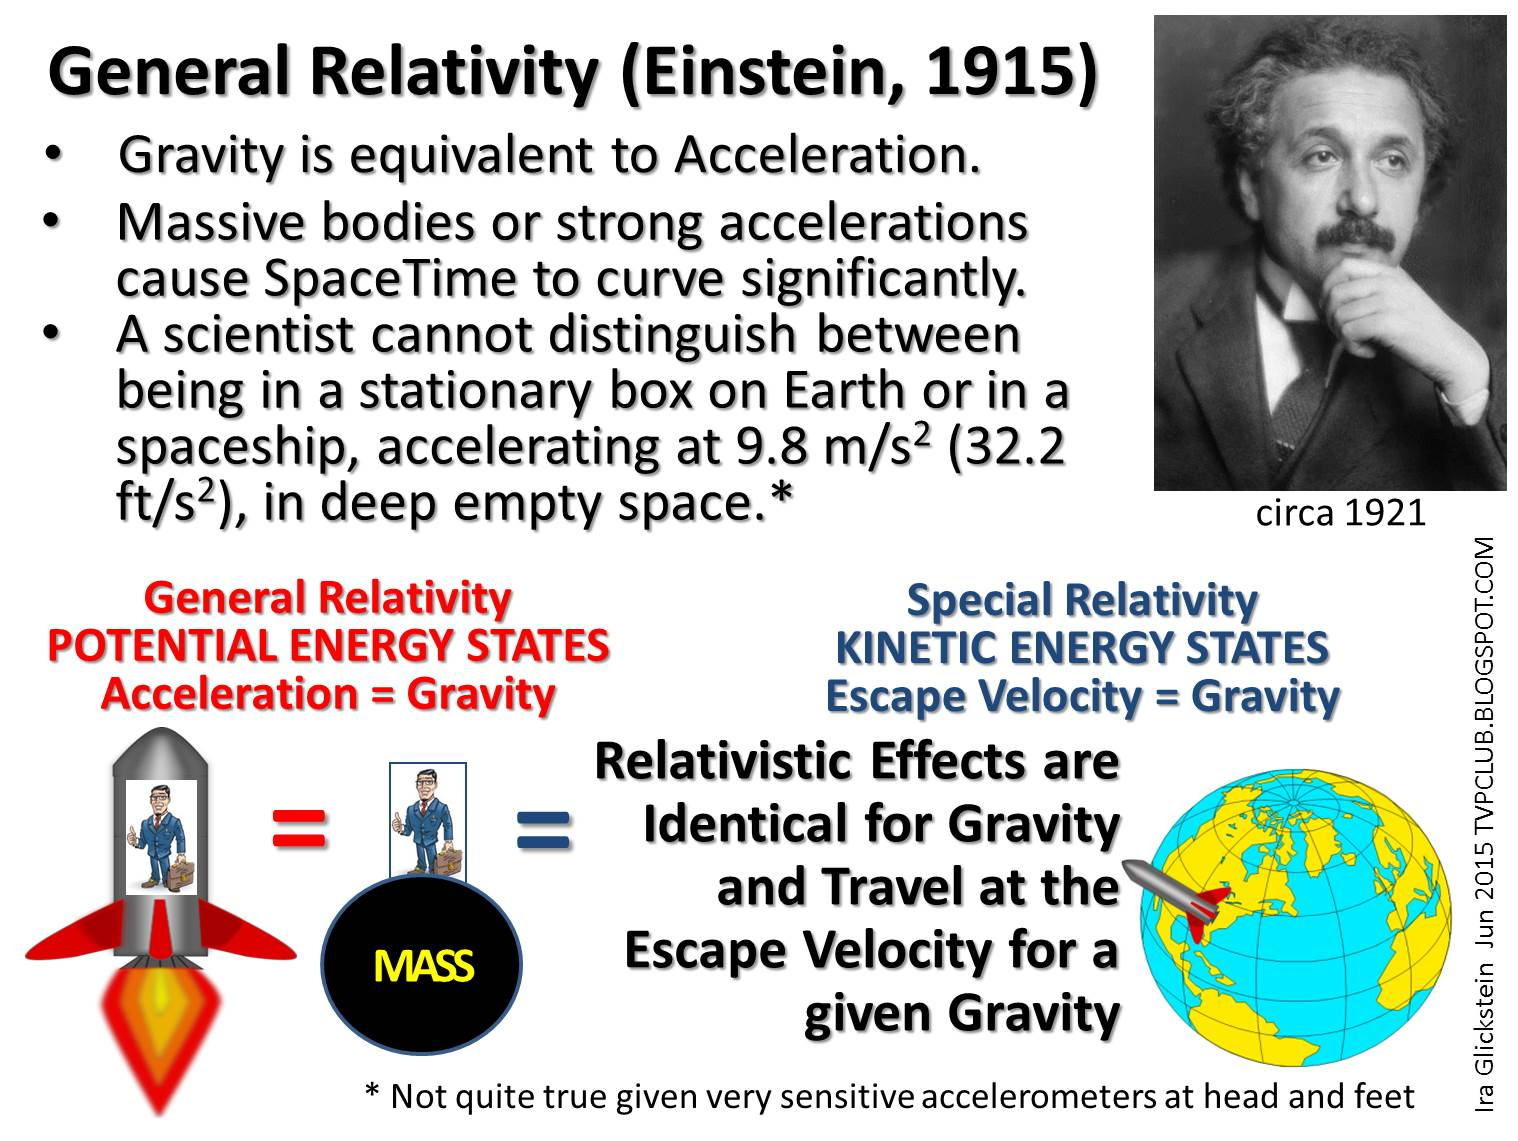 einsteins relativity gravity and acceleration relationship